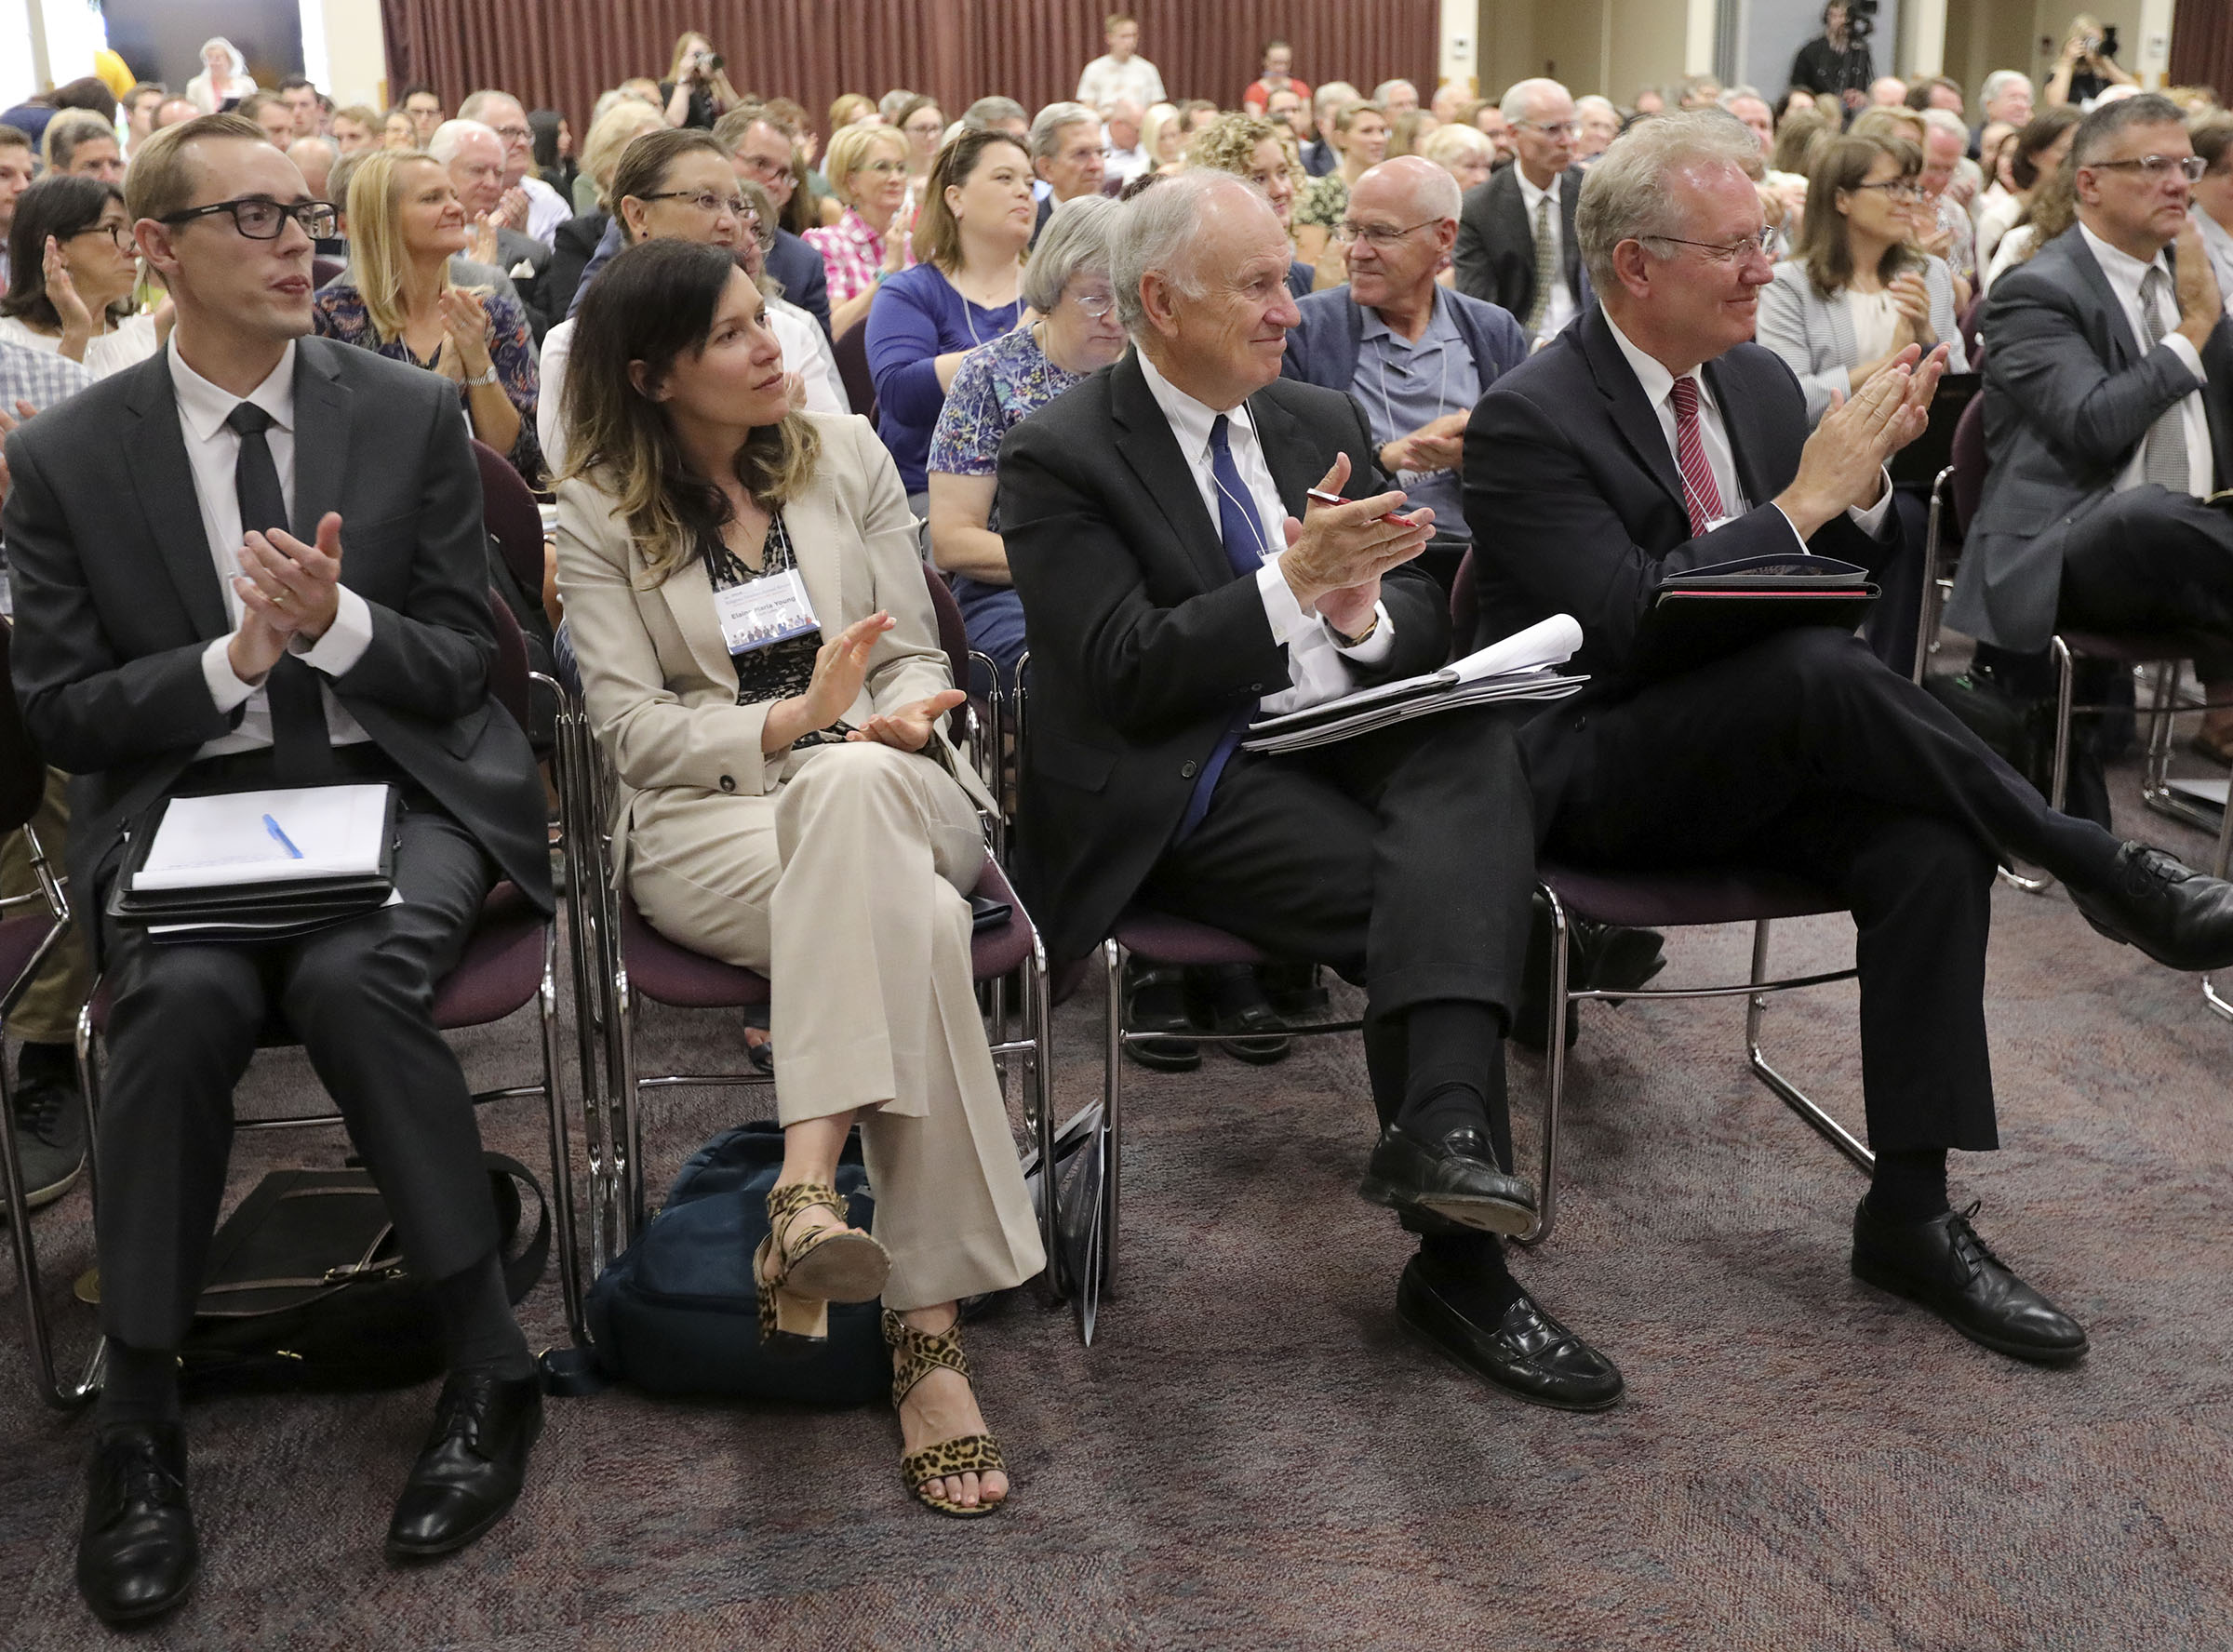 Attendees applaud after Elder Patrick Kearon, of The Church of Jesus Christ of Latter-day Saints' Quorums of the Seventy, gave the keynote address at the Religious Freedom Annual Review at the BYU Conference Center in Provo on Wednesday, June 19, 2019.